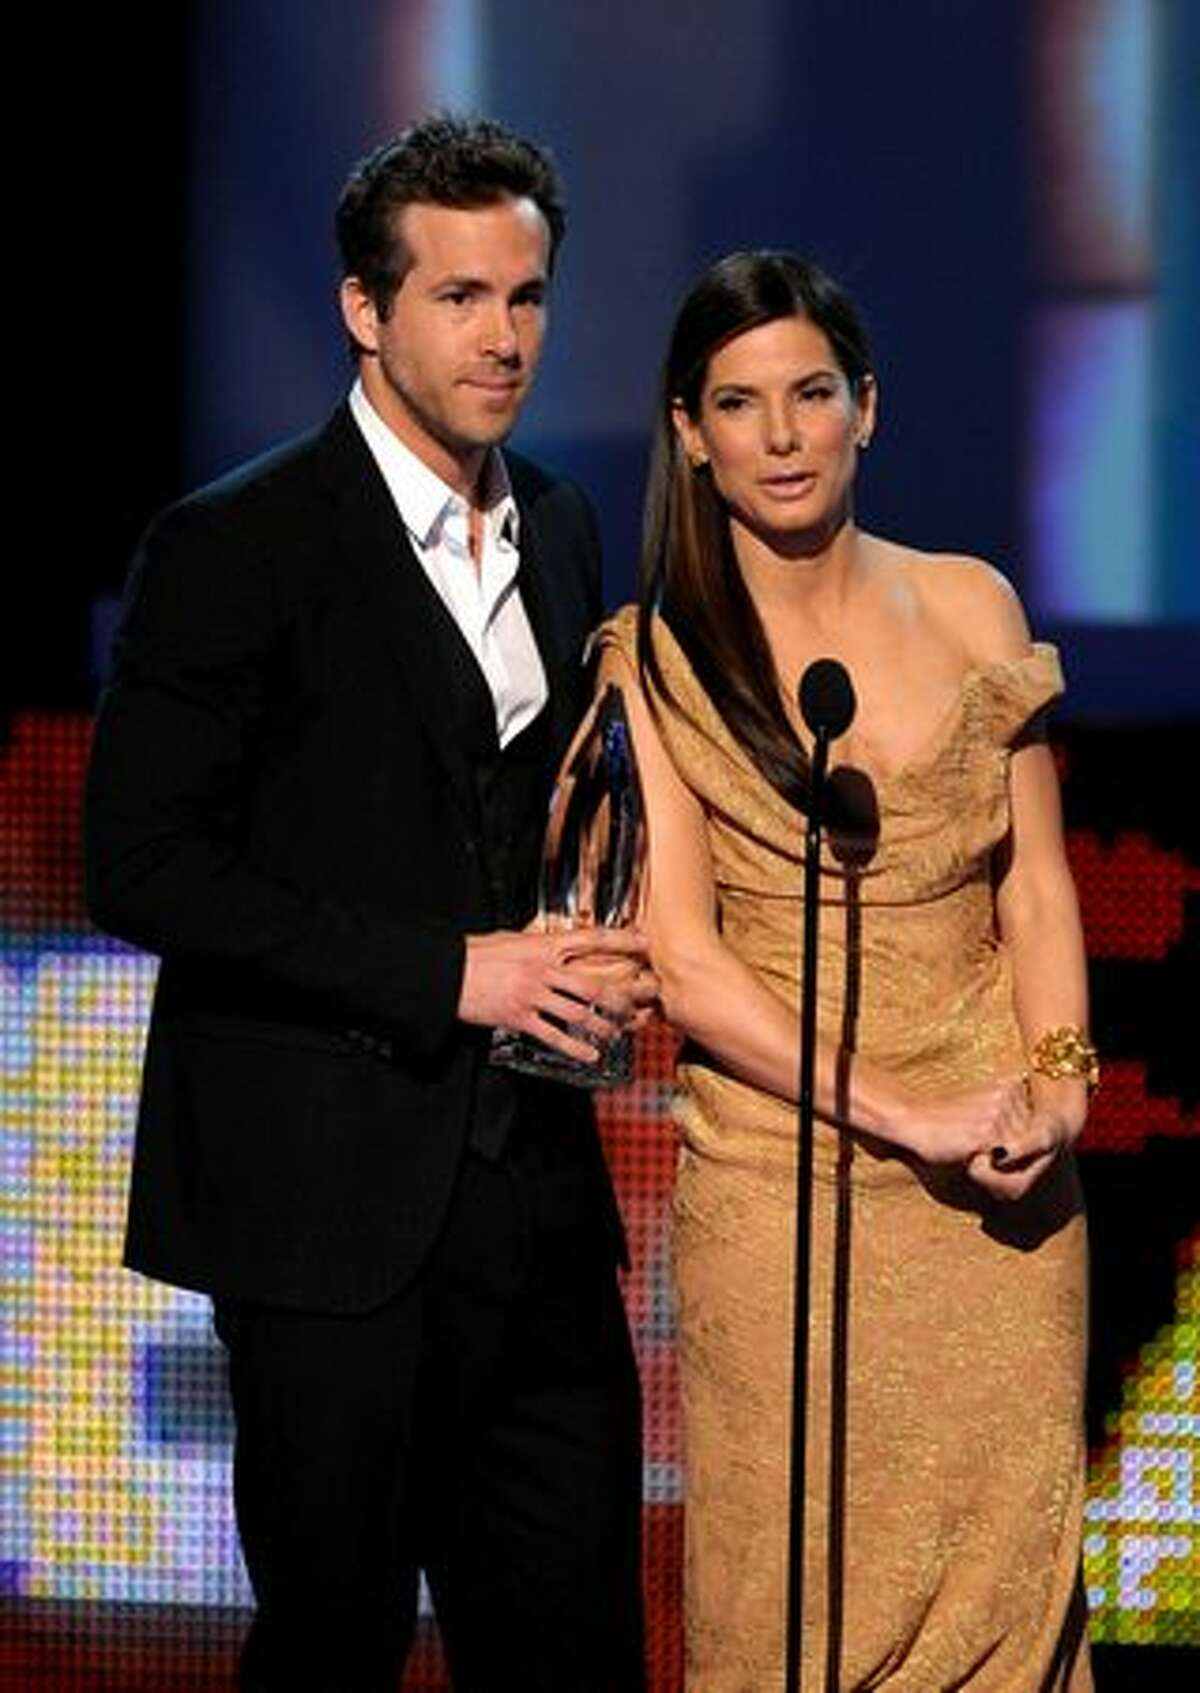 Actor Ryan Reynolds (L) and actress Sandra Bullock accept the Favorite Comedy Movie award for